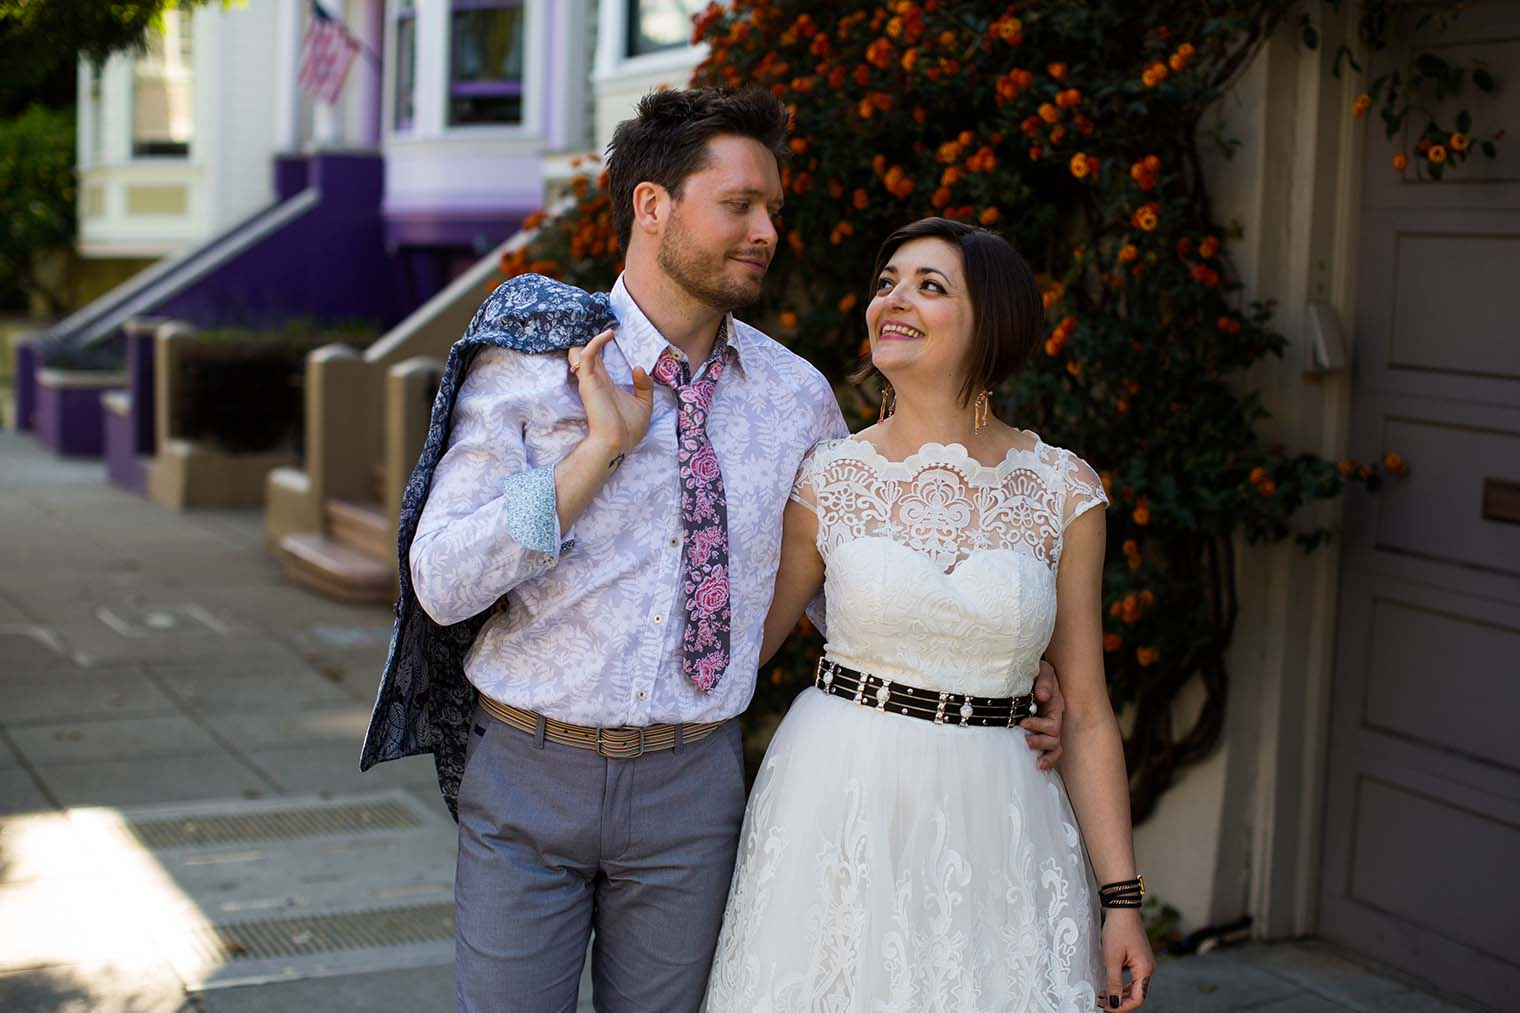 Wedding portraits taken in the Castro